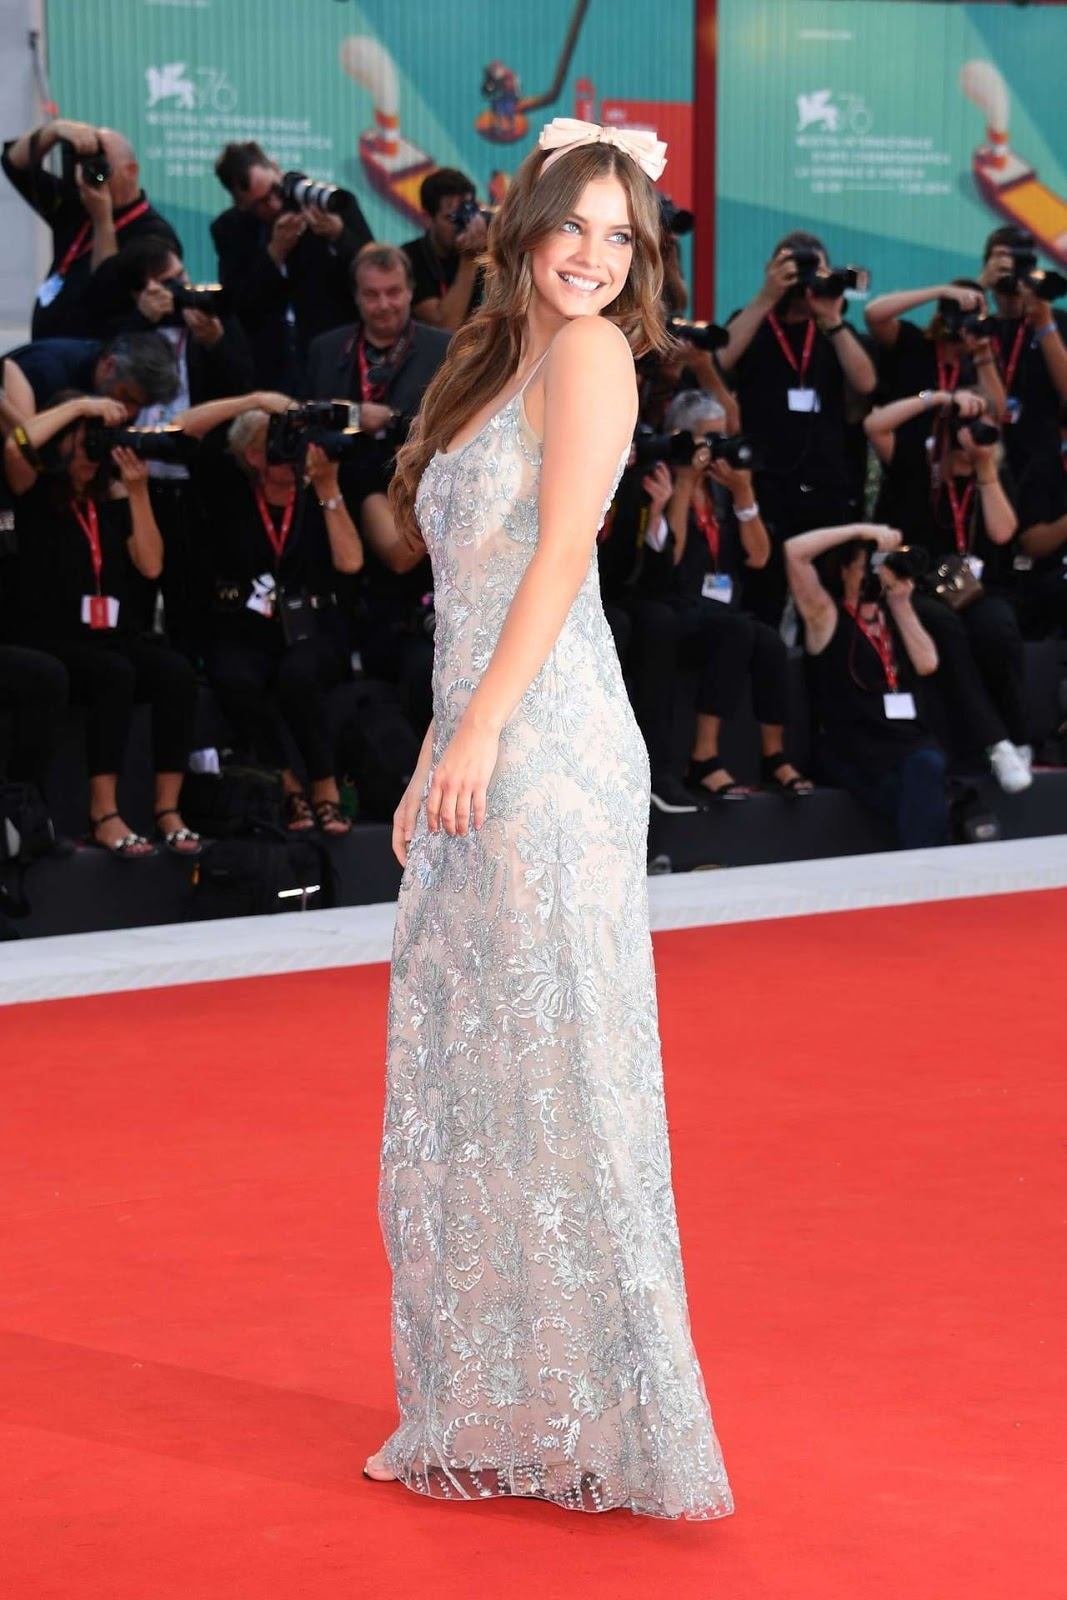 Barbara Palvin Sports Elegant Embroidered Gown at 'Joker' Venice Premiere